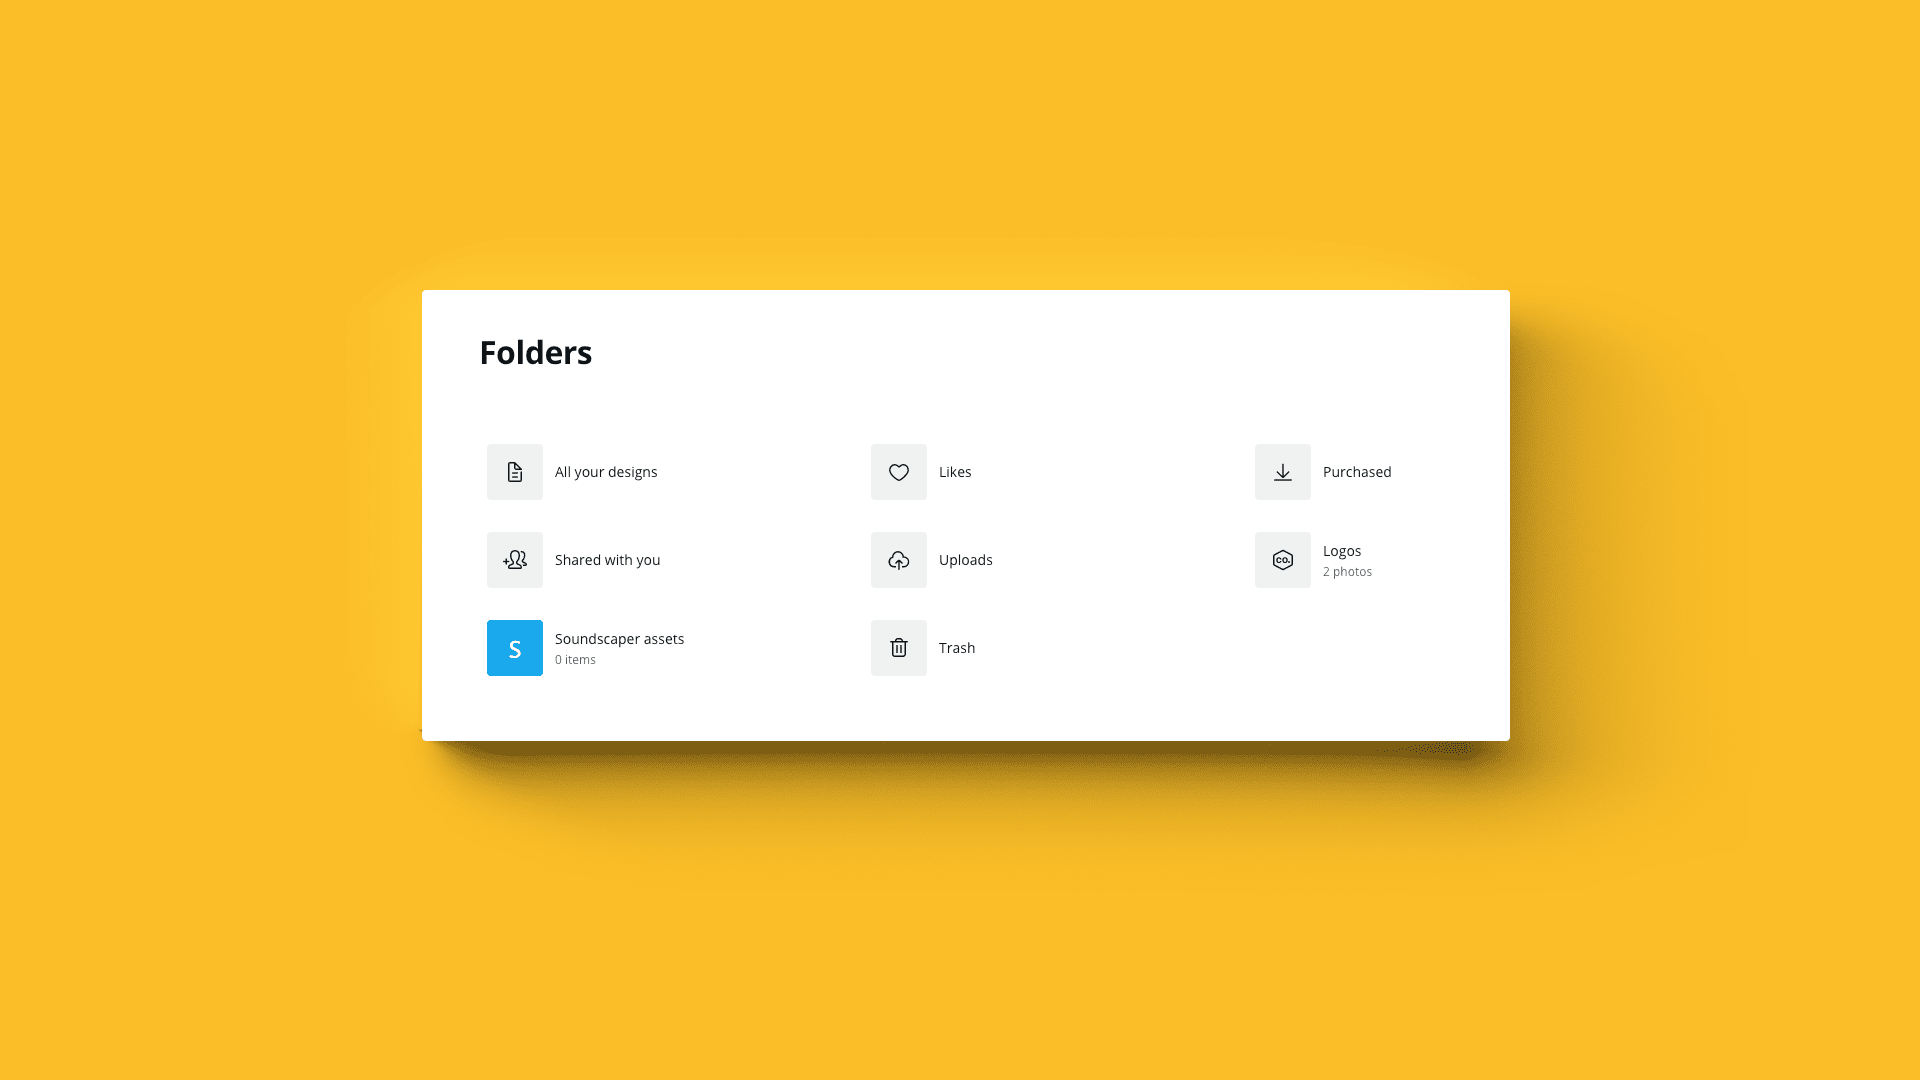 How to create and share design folders